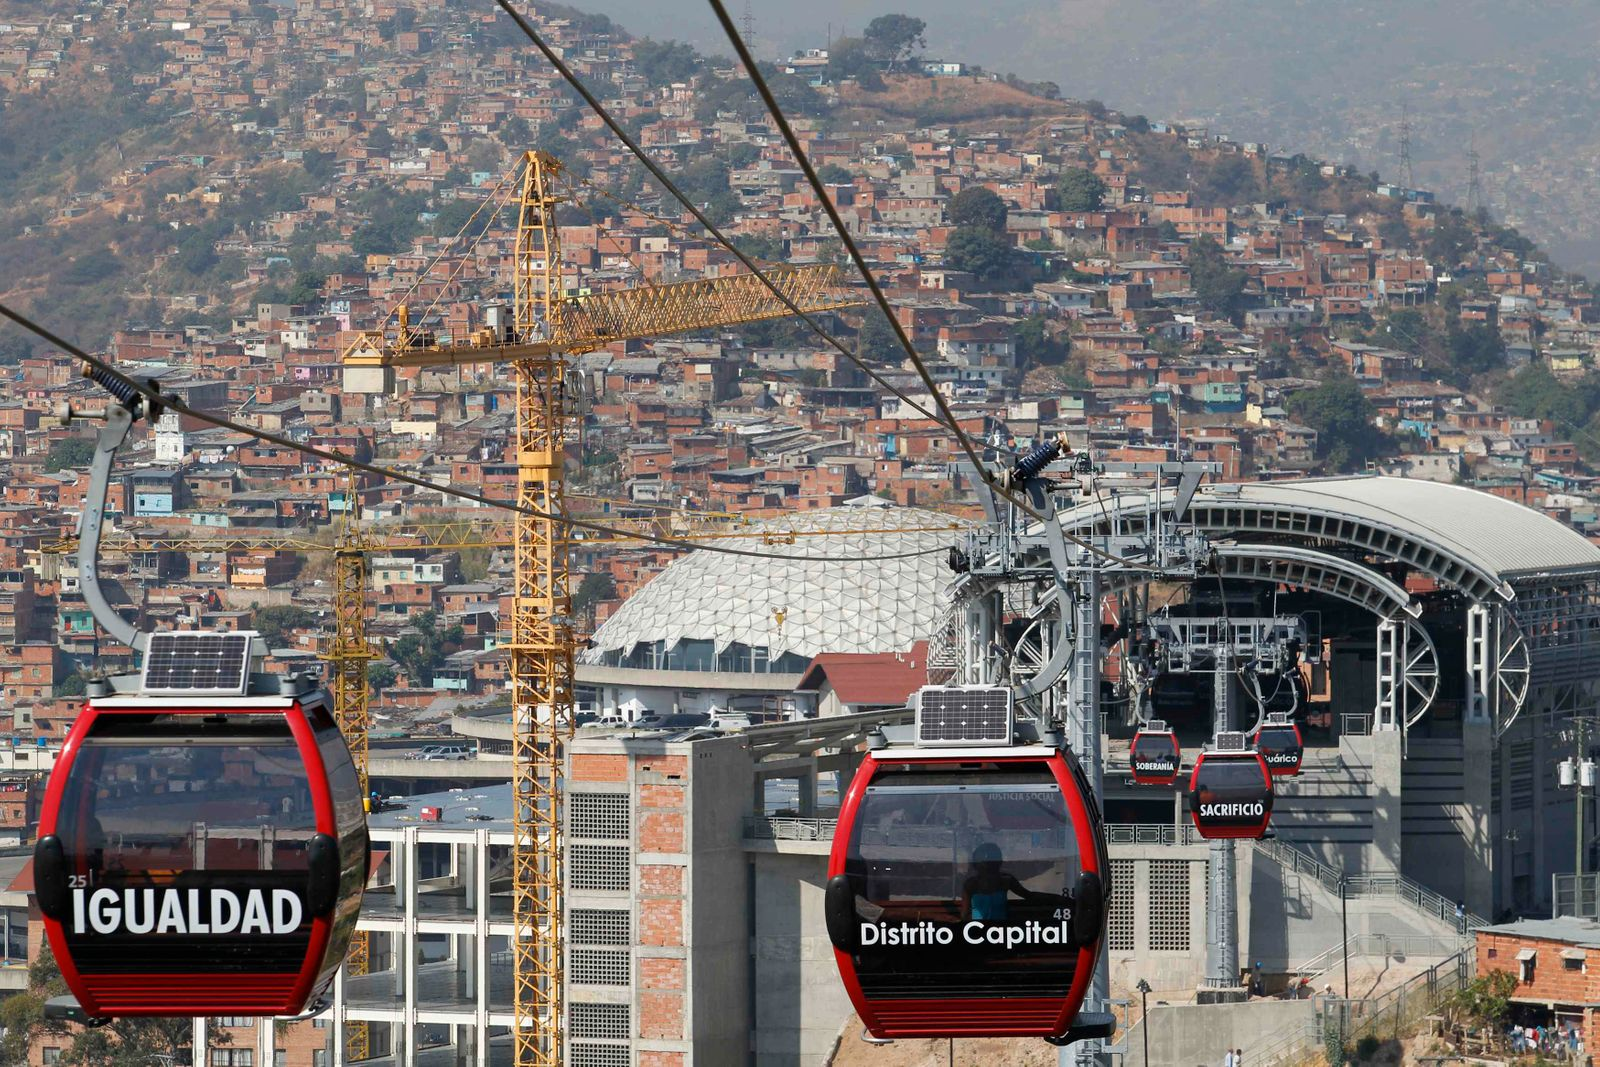 Metrocable cabins are seen as they travel in Caracas